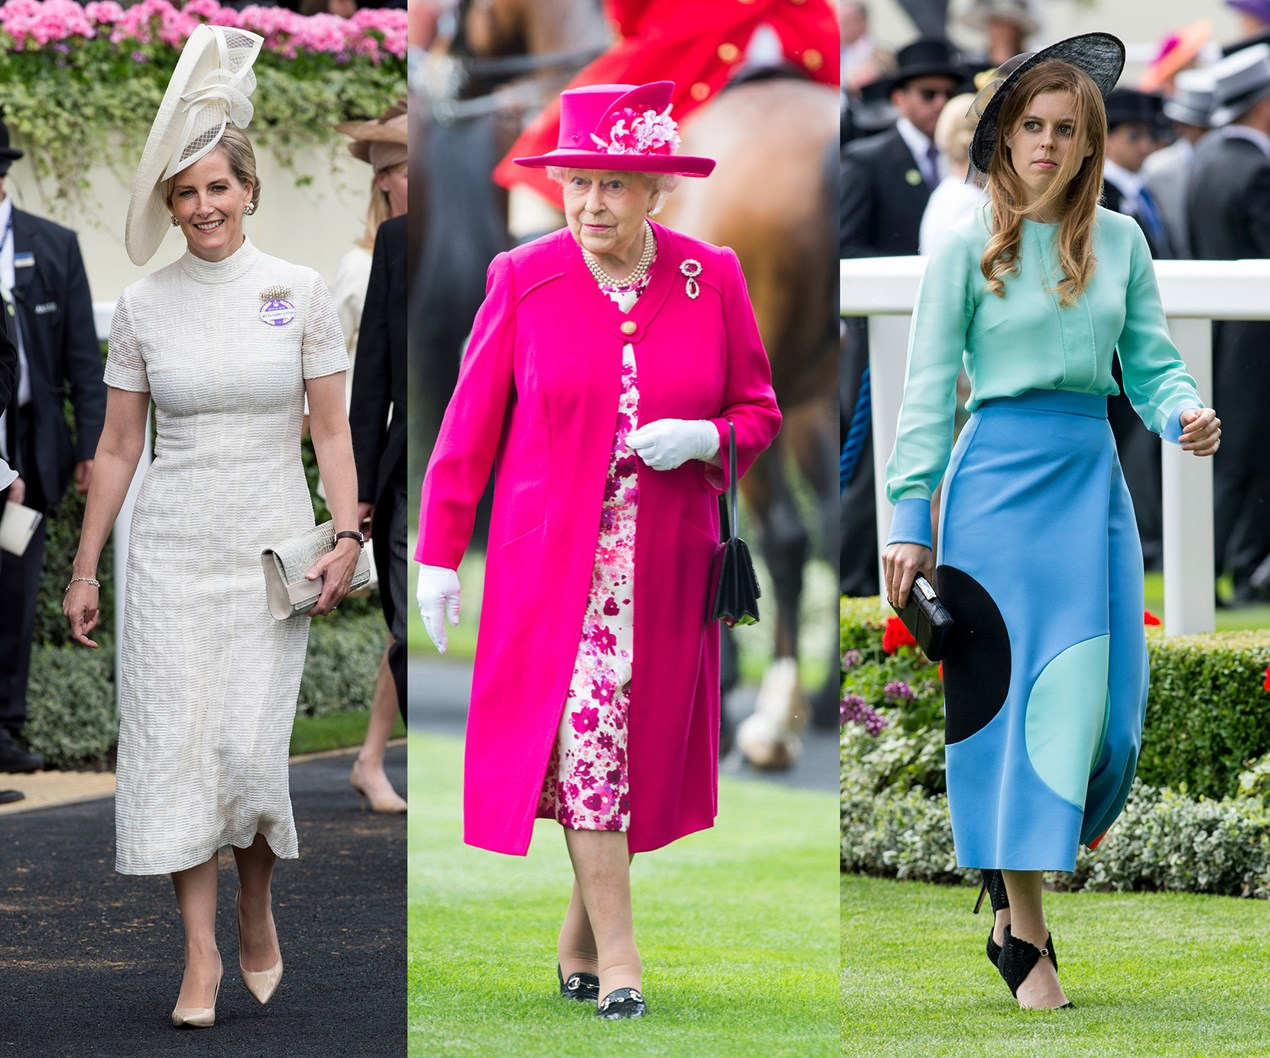 ascot cougar women Solow was the first winner at the 2015 royal ascot meeting, taking victory in the queen anne stakes the two other hotly anticipated races were the king's stand stakes and the st.